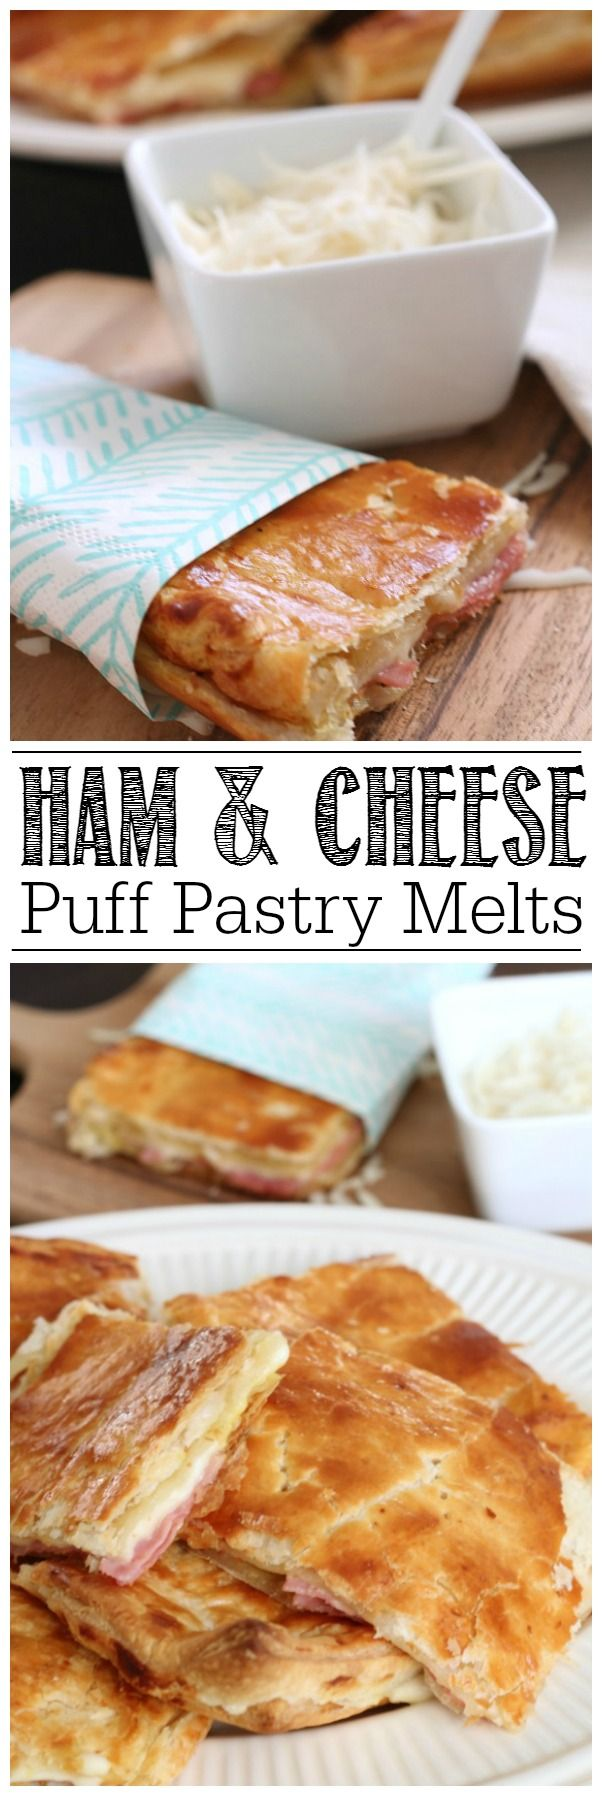 Take your grilled cheese up a notch with this ham and cheese melt recipe. SO good and can be customized with any filling that you would like!